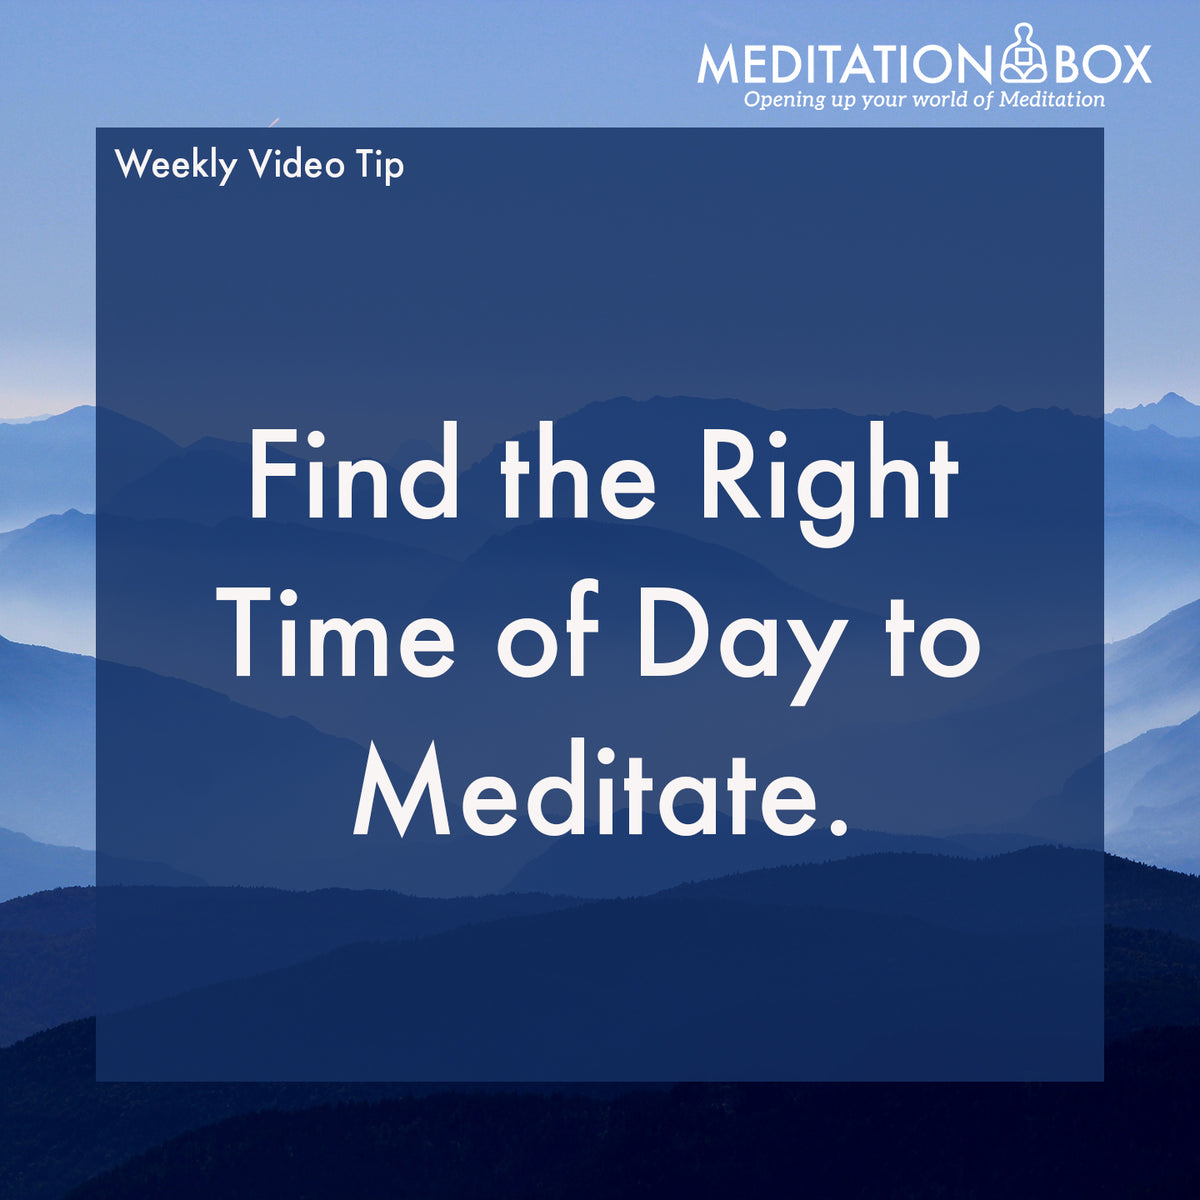 Find the Right Time of Day to Meditate - Here's How